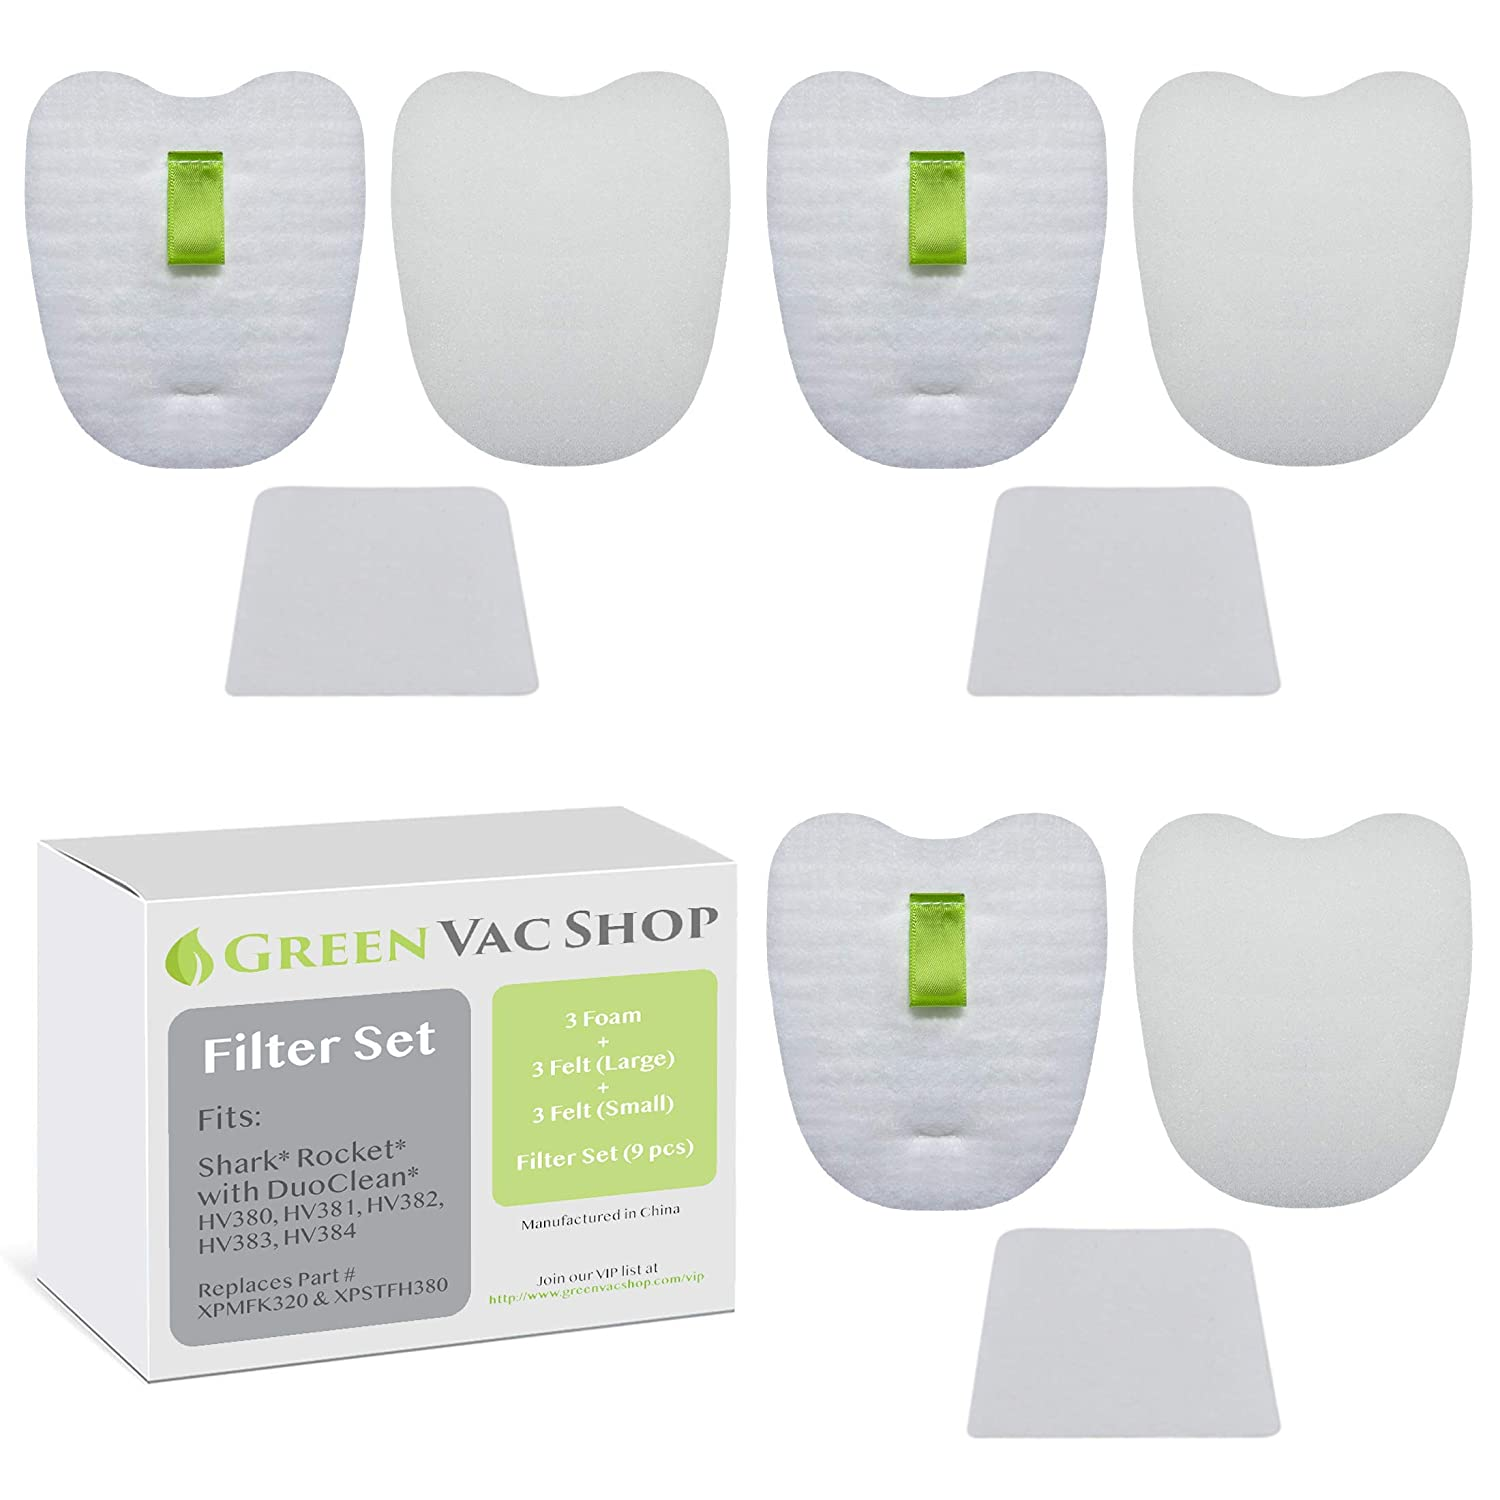 GreenVacShop Shark Rocket DuoClean HV380, HV380W, HV381, HV382, HV383, HV384Q Updated Replacement Filter Set, 6 Pre-Filters (3 Foam+3 Felt) and 3 Post-Filters, Replaces Shark Part# XPMFK320 XPSTFH380